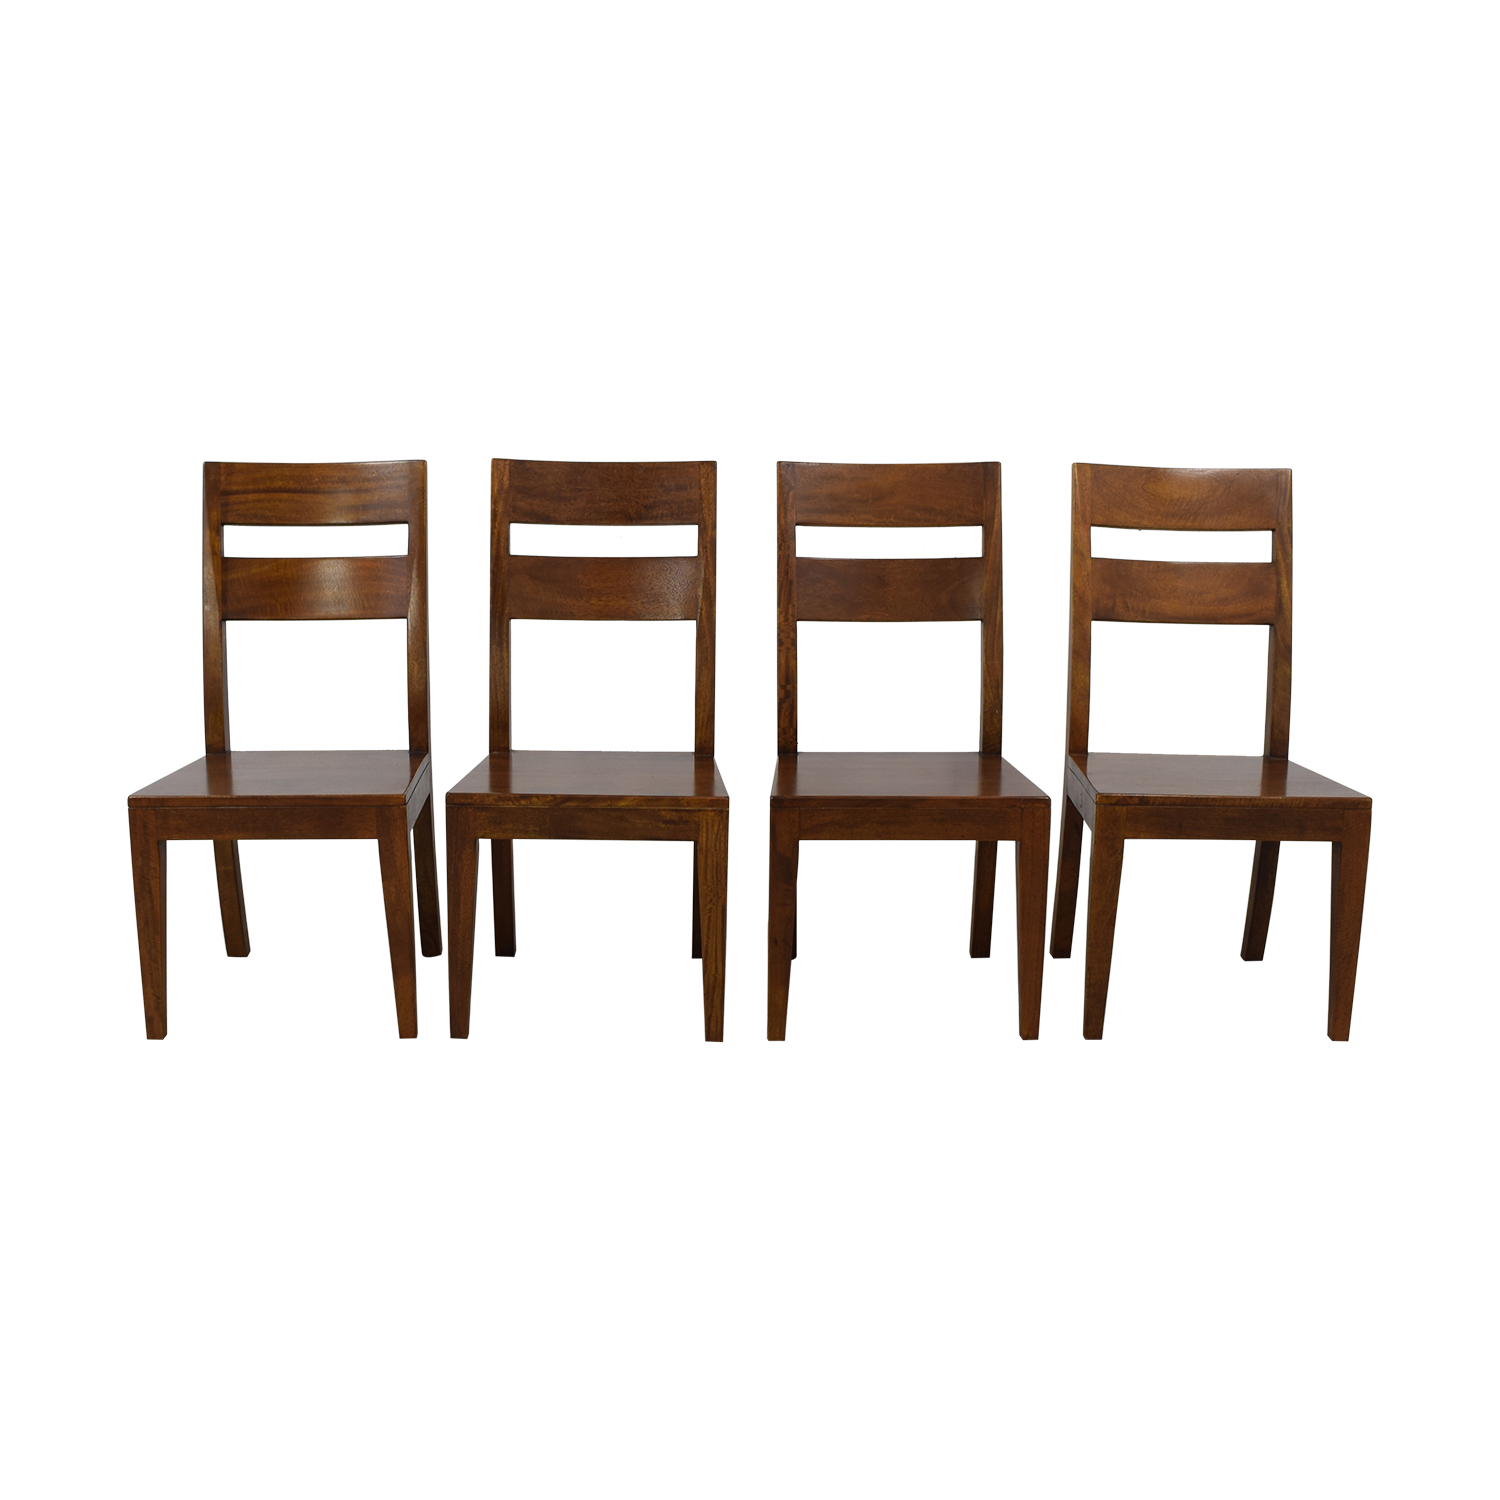 Crate & Barrel Crate & Barrel Basque Honey Dining Chairs discount